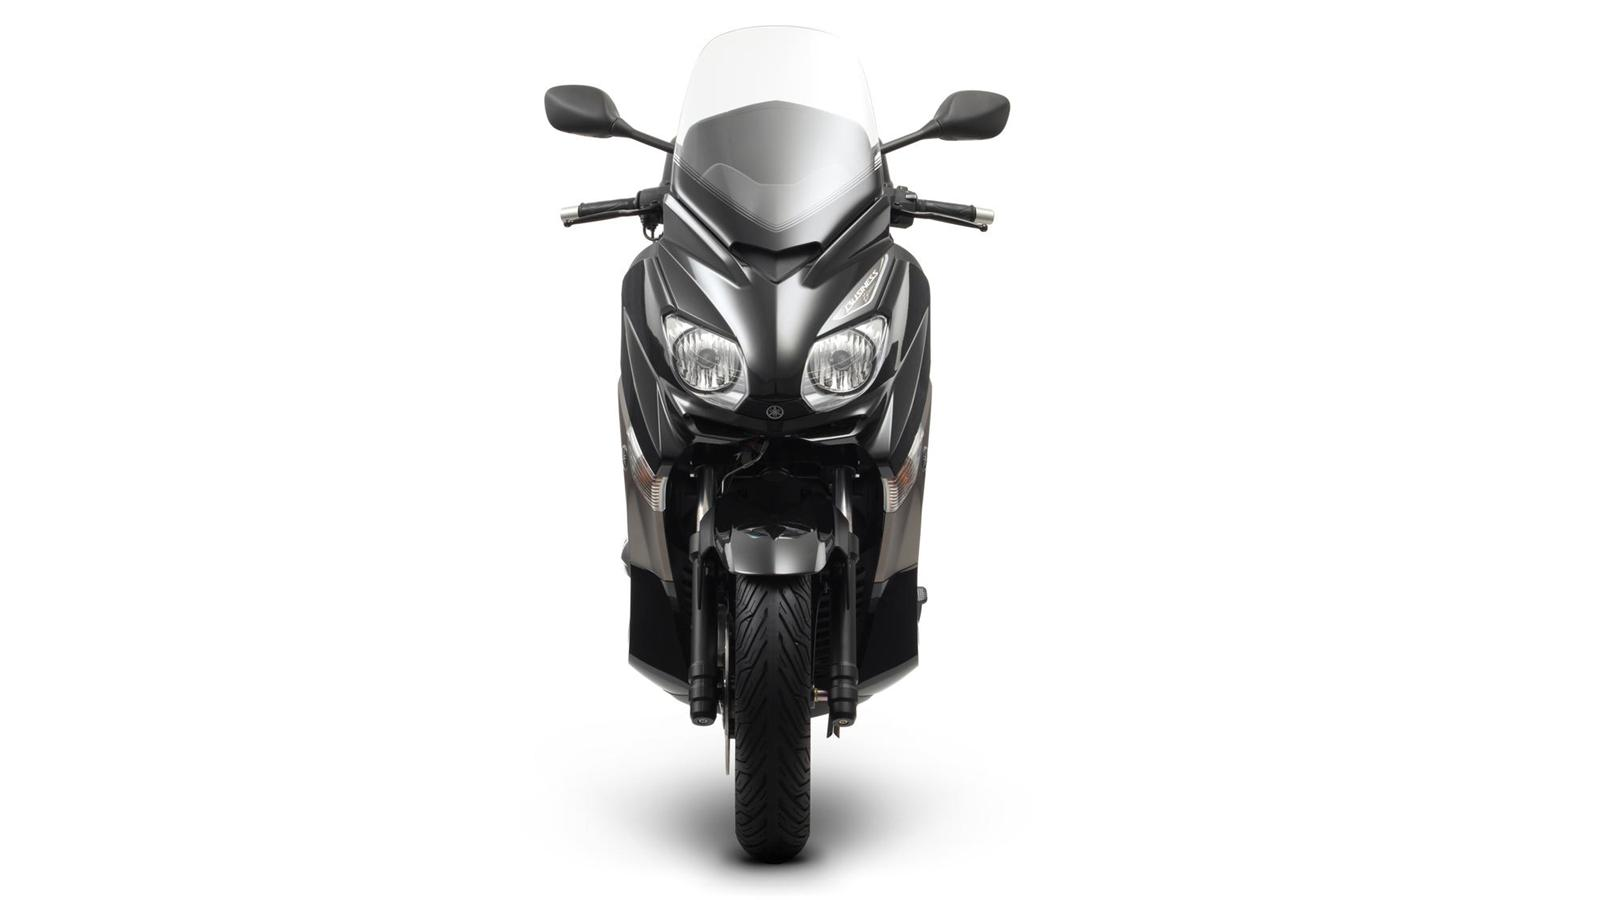 Мотоцикл Yamaha X-MAX 125 BUSINESS 2013